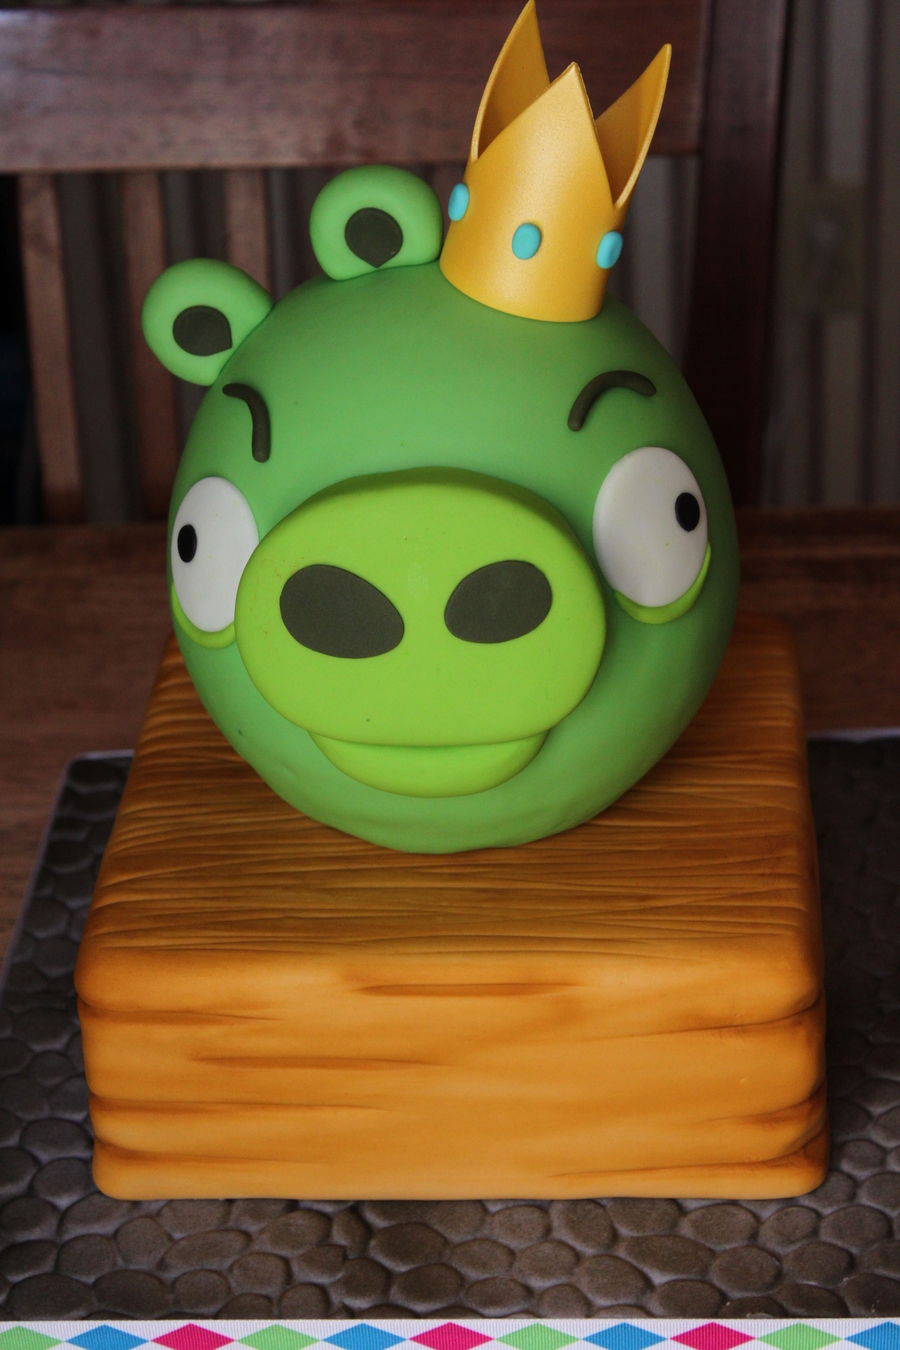 King Piggy Cake From Angry Birds on Cake Central